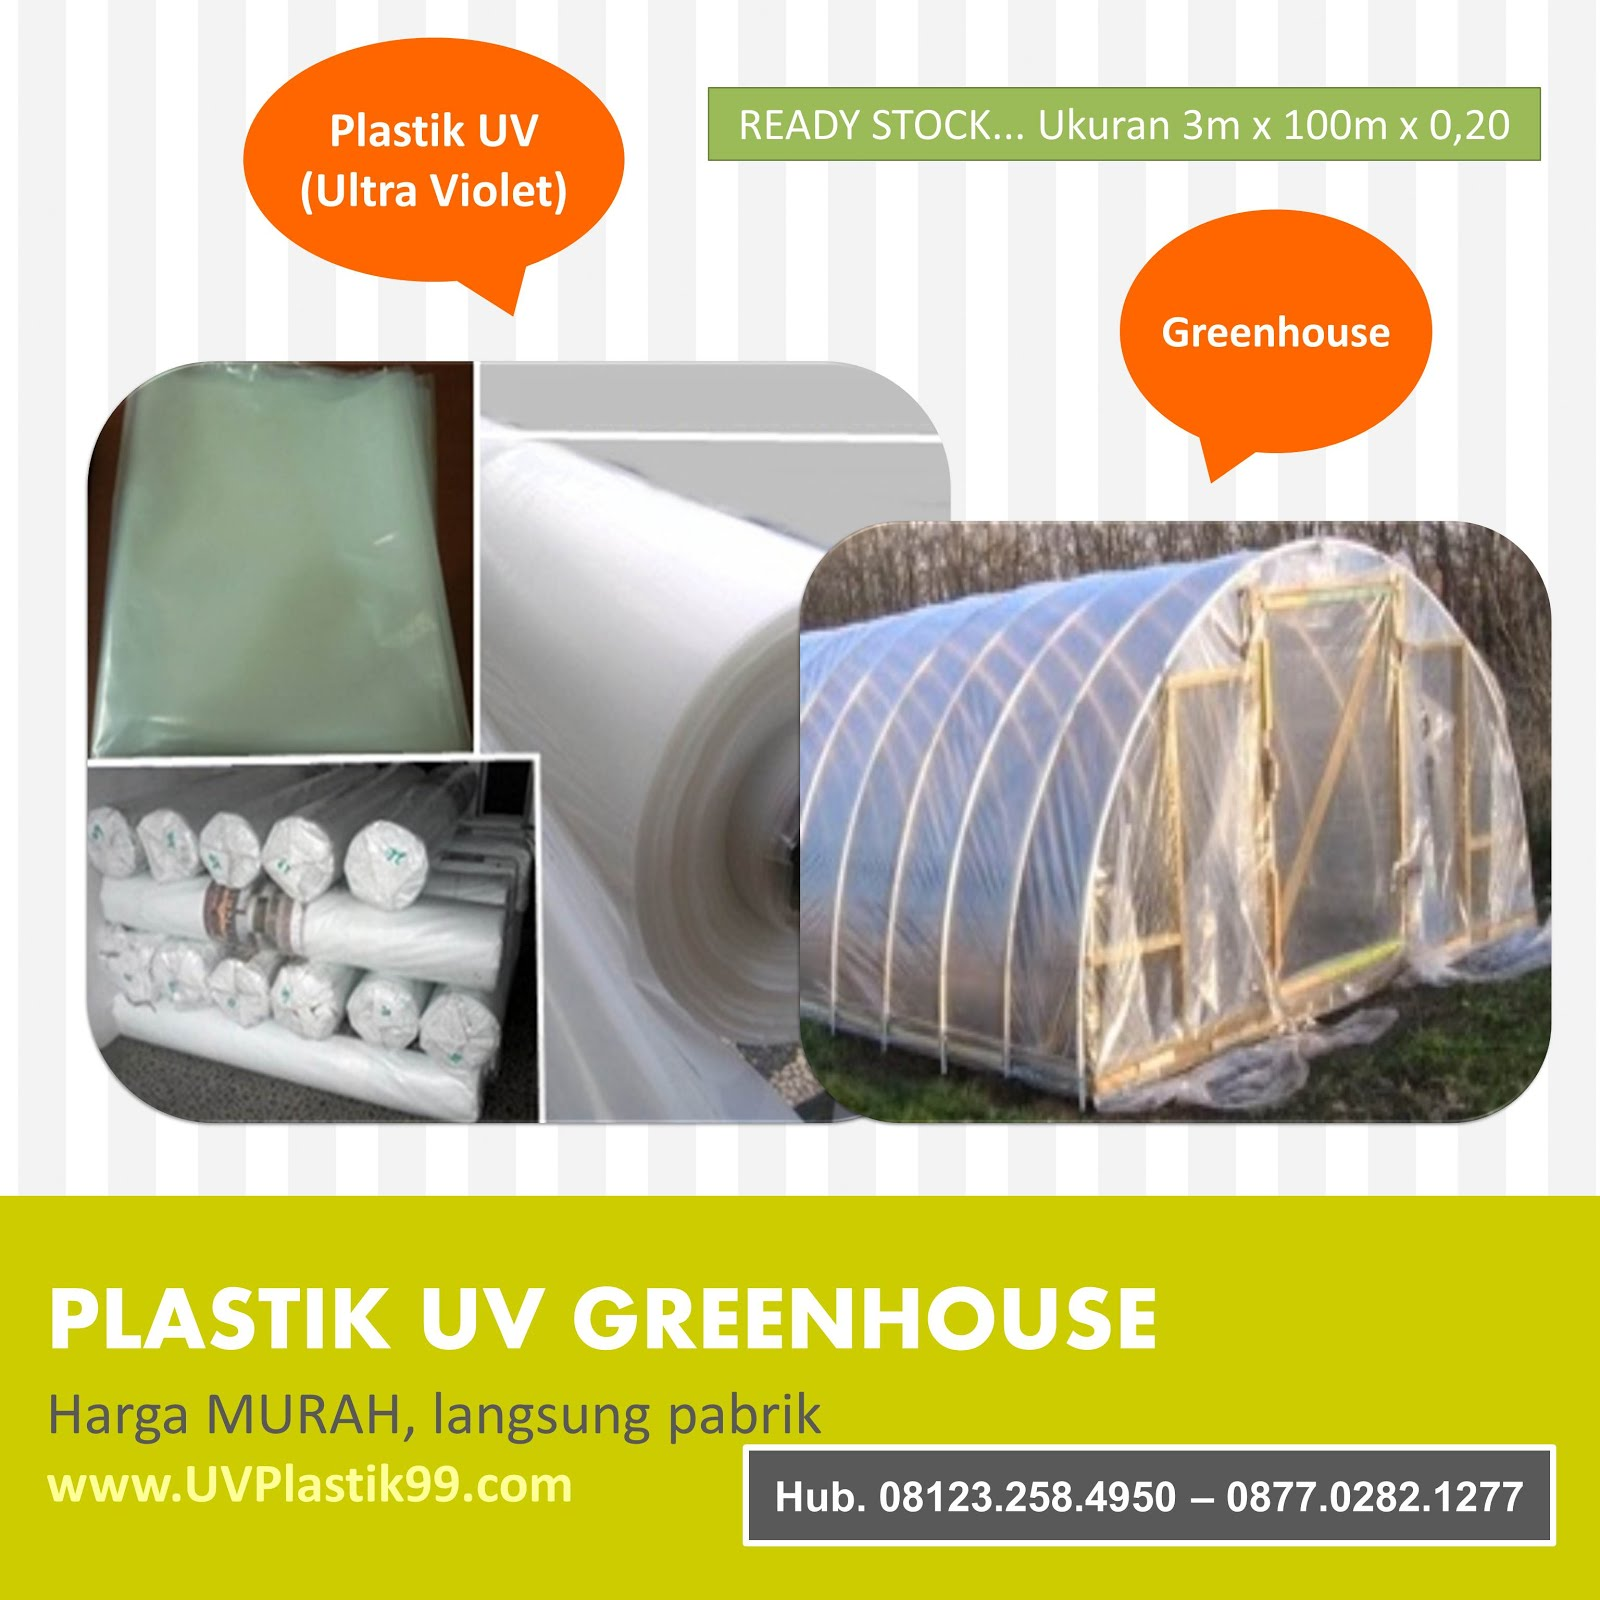 Plastik UV Greenhouse Murah